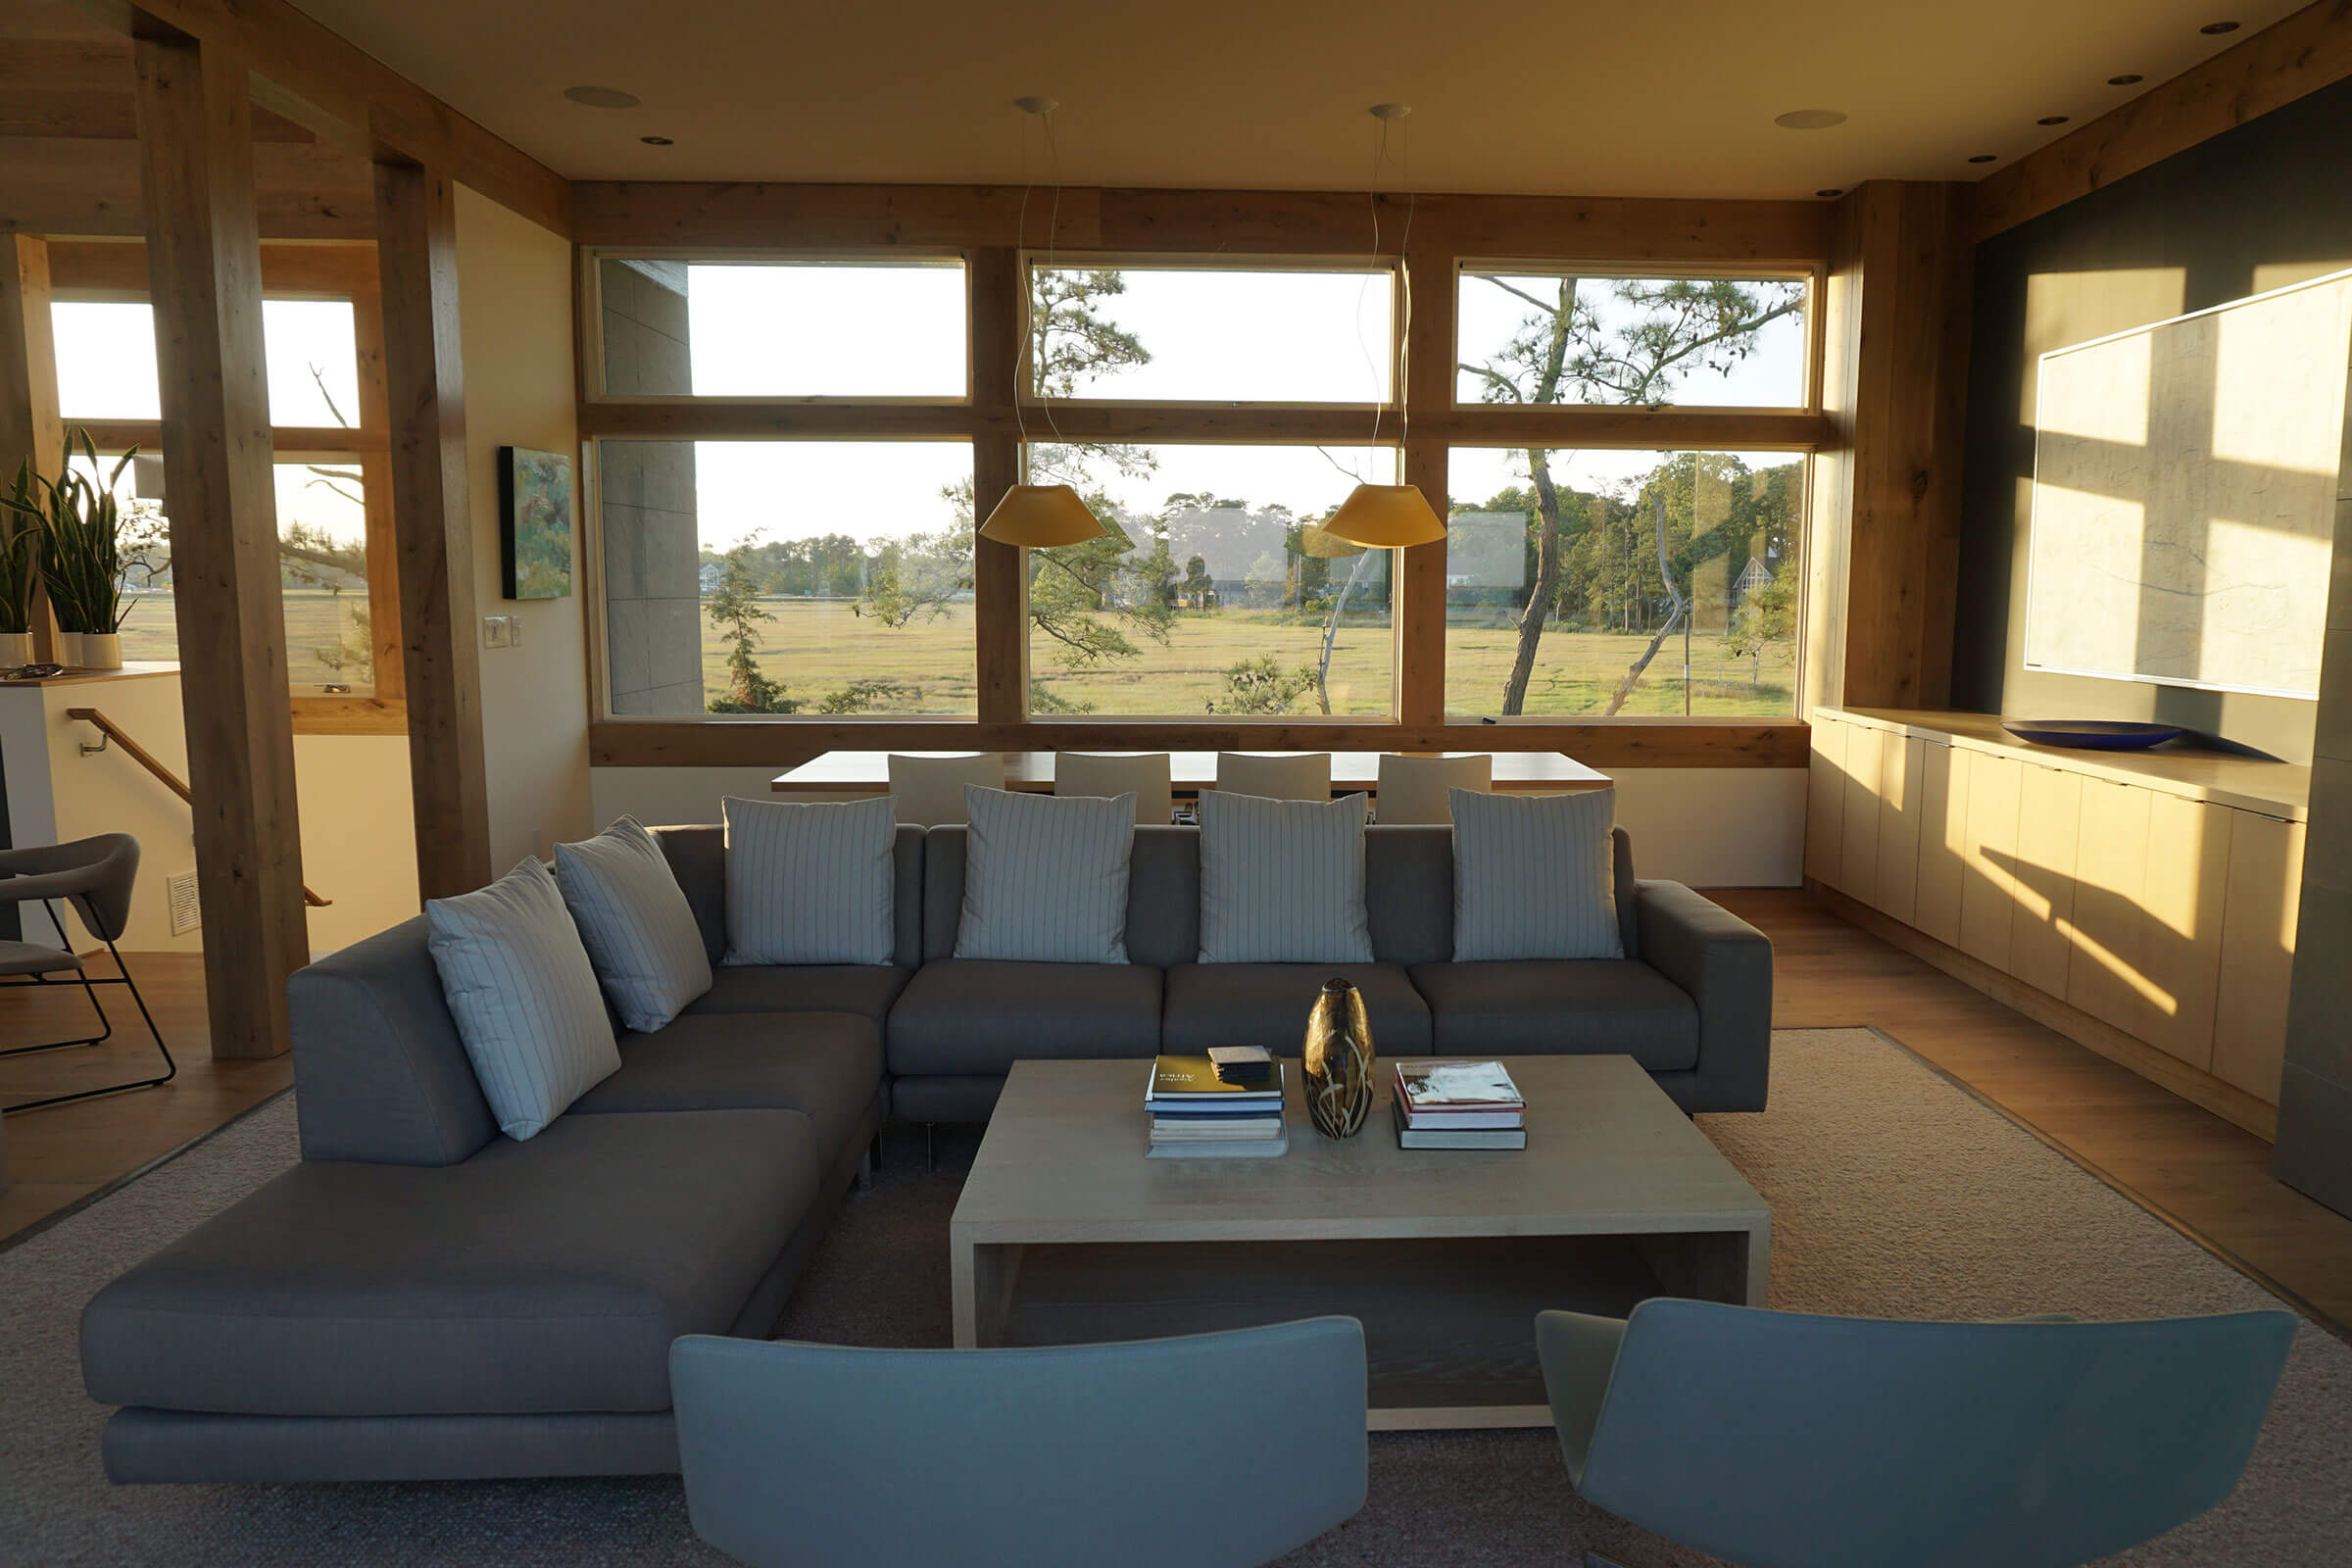 Living Room With Elevate Casement And Elevate Awning Windows